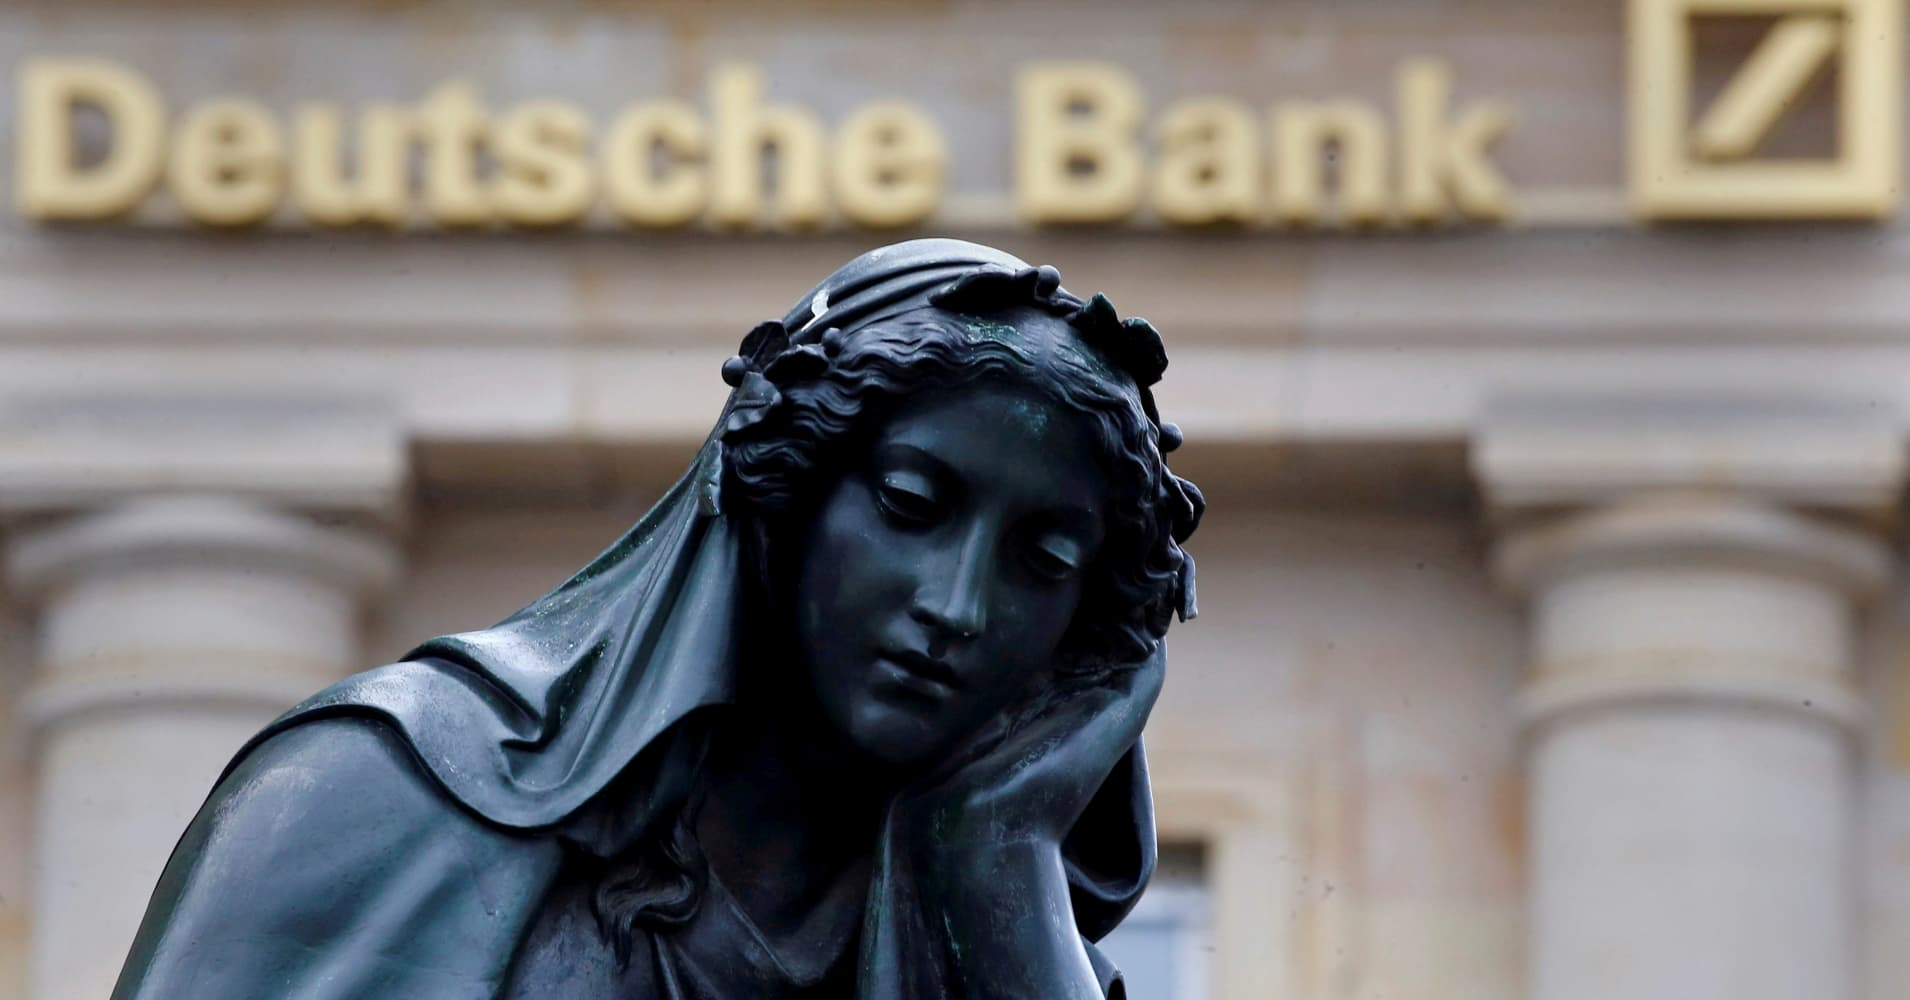 It might be time for Europe's banking regulators to make boring great again